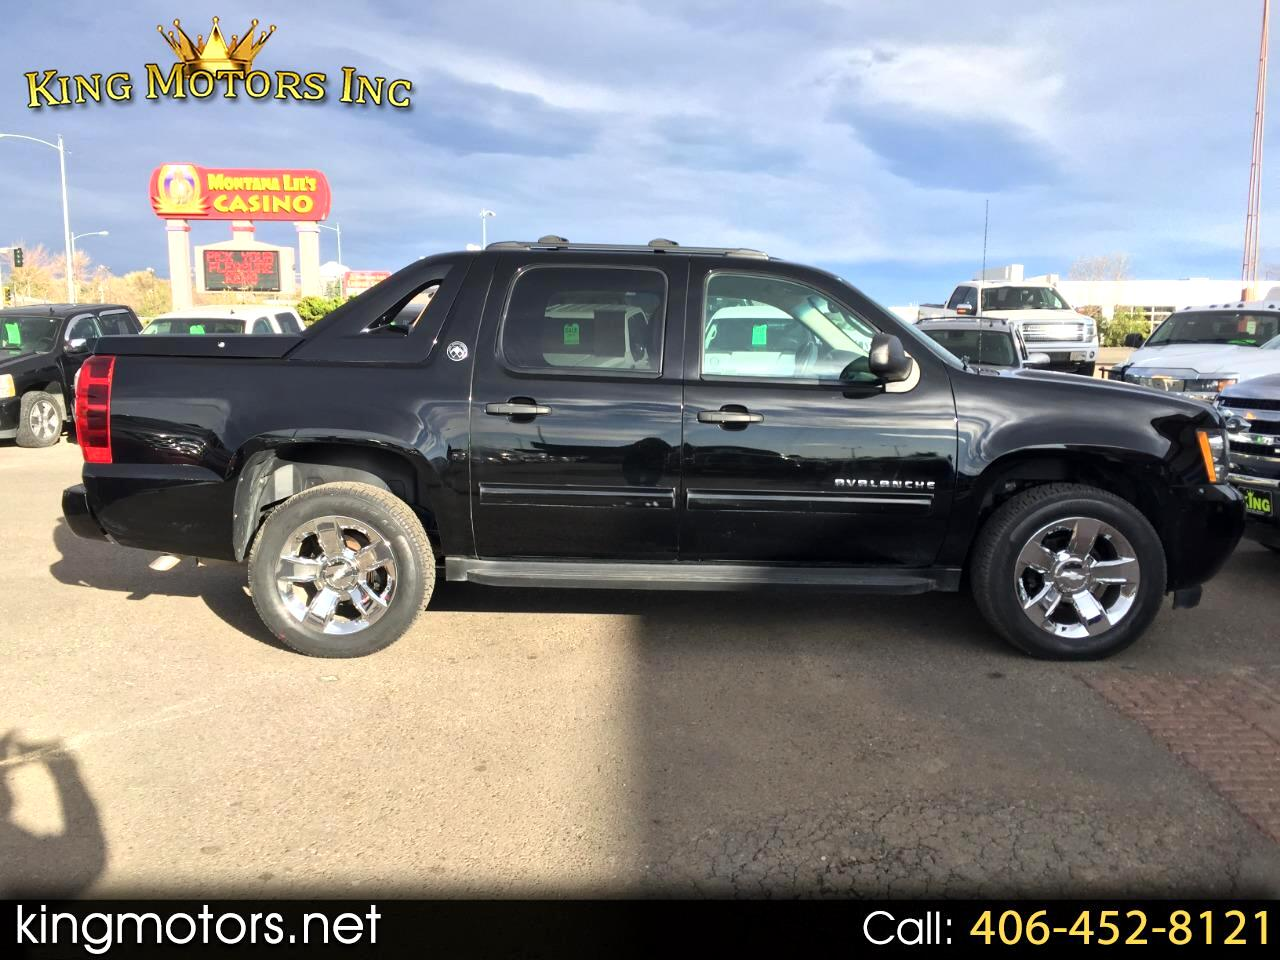 2013 Chevrolet Avalanche 4WD Crew Cab LS